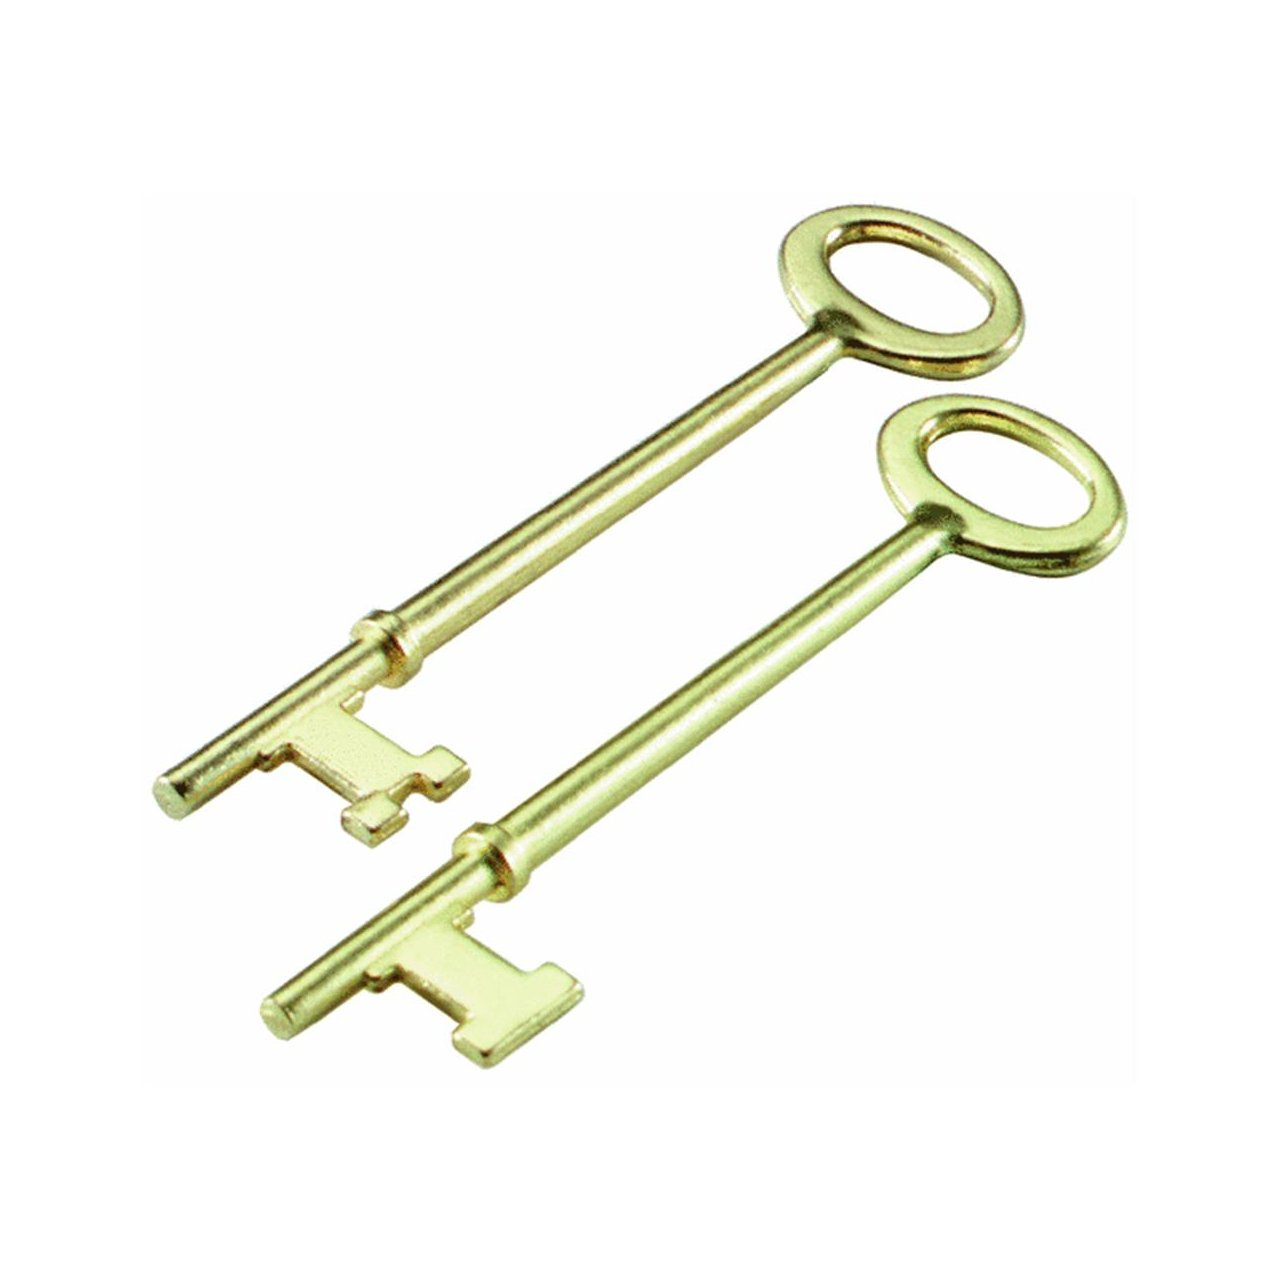 Decorative House Keys House Key Design Terrific House Key Designs Decoration Design Archives